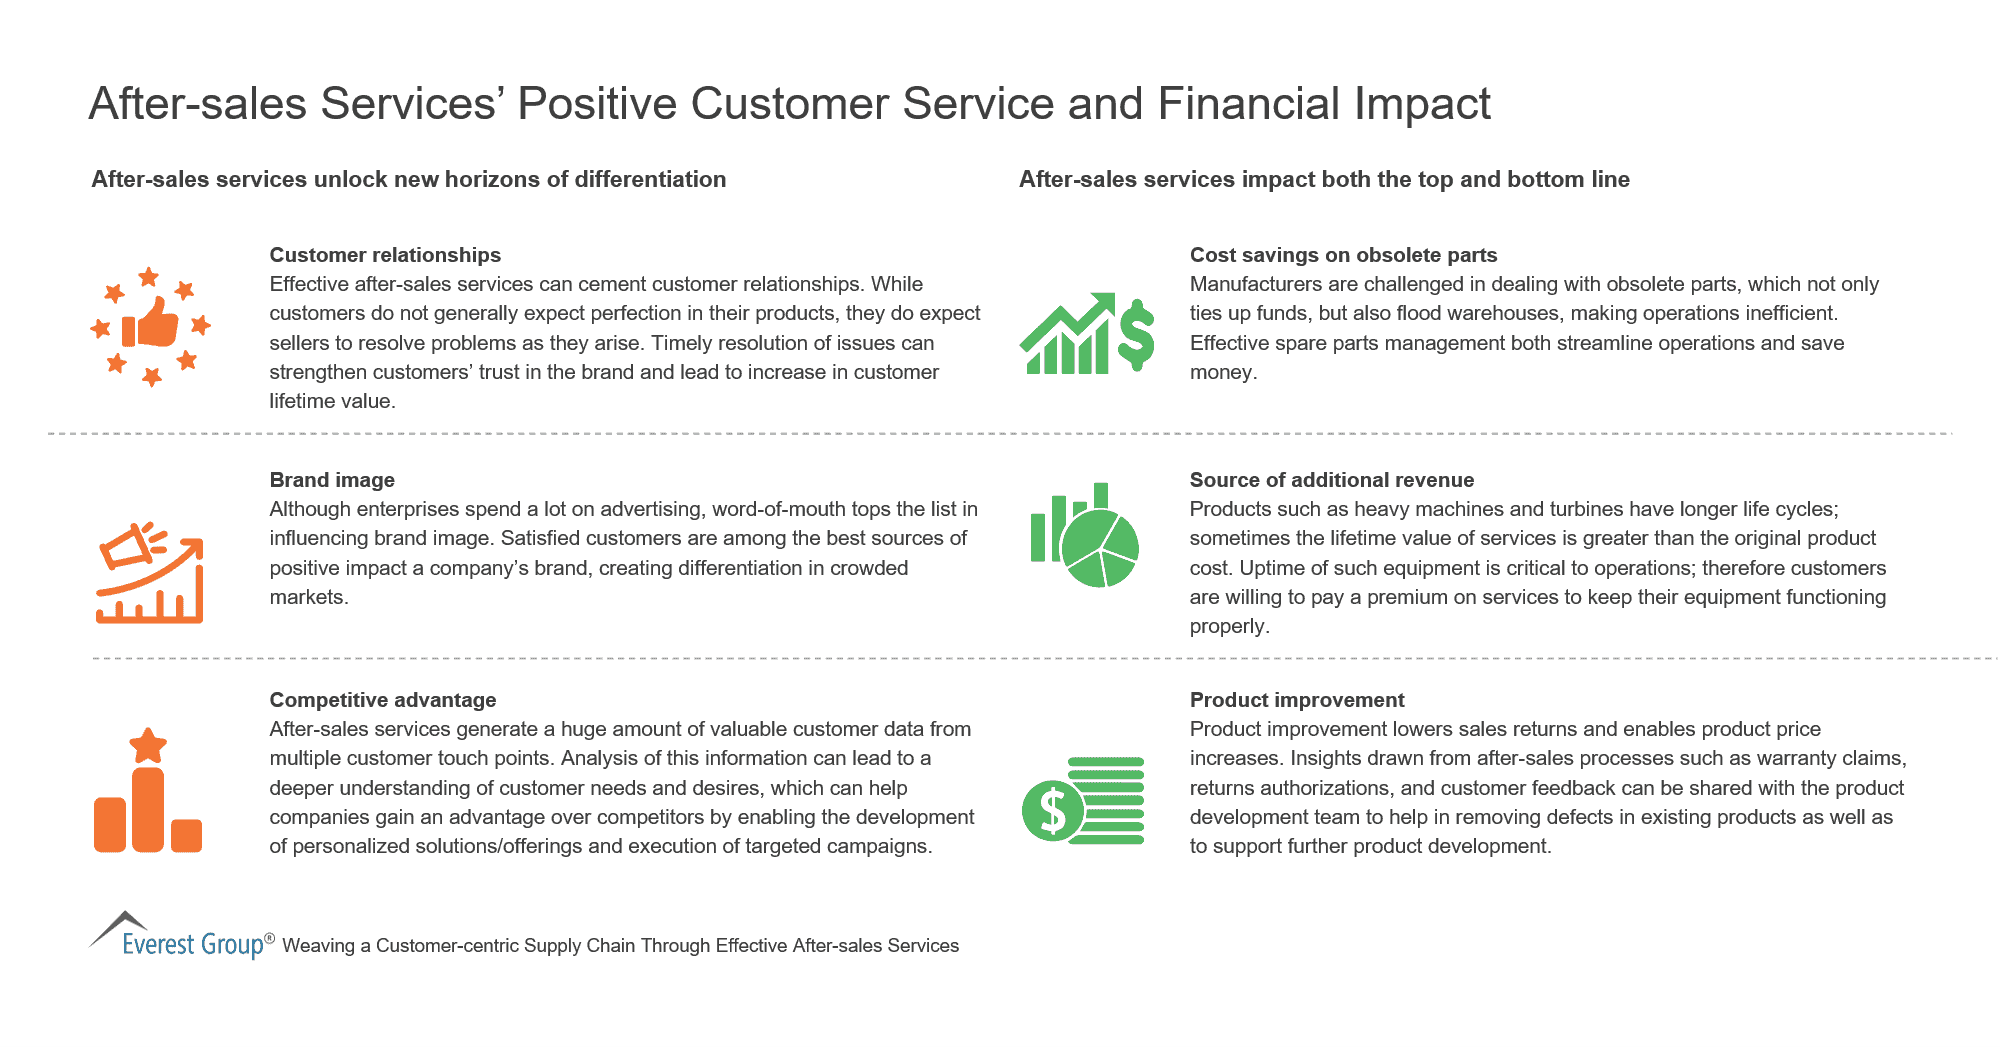 After-sales Services' Positive Customer Service and Financial Impact